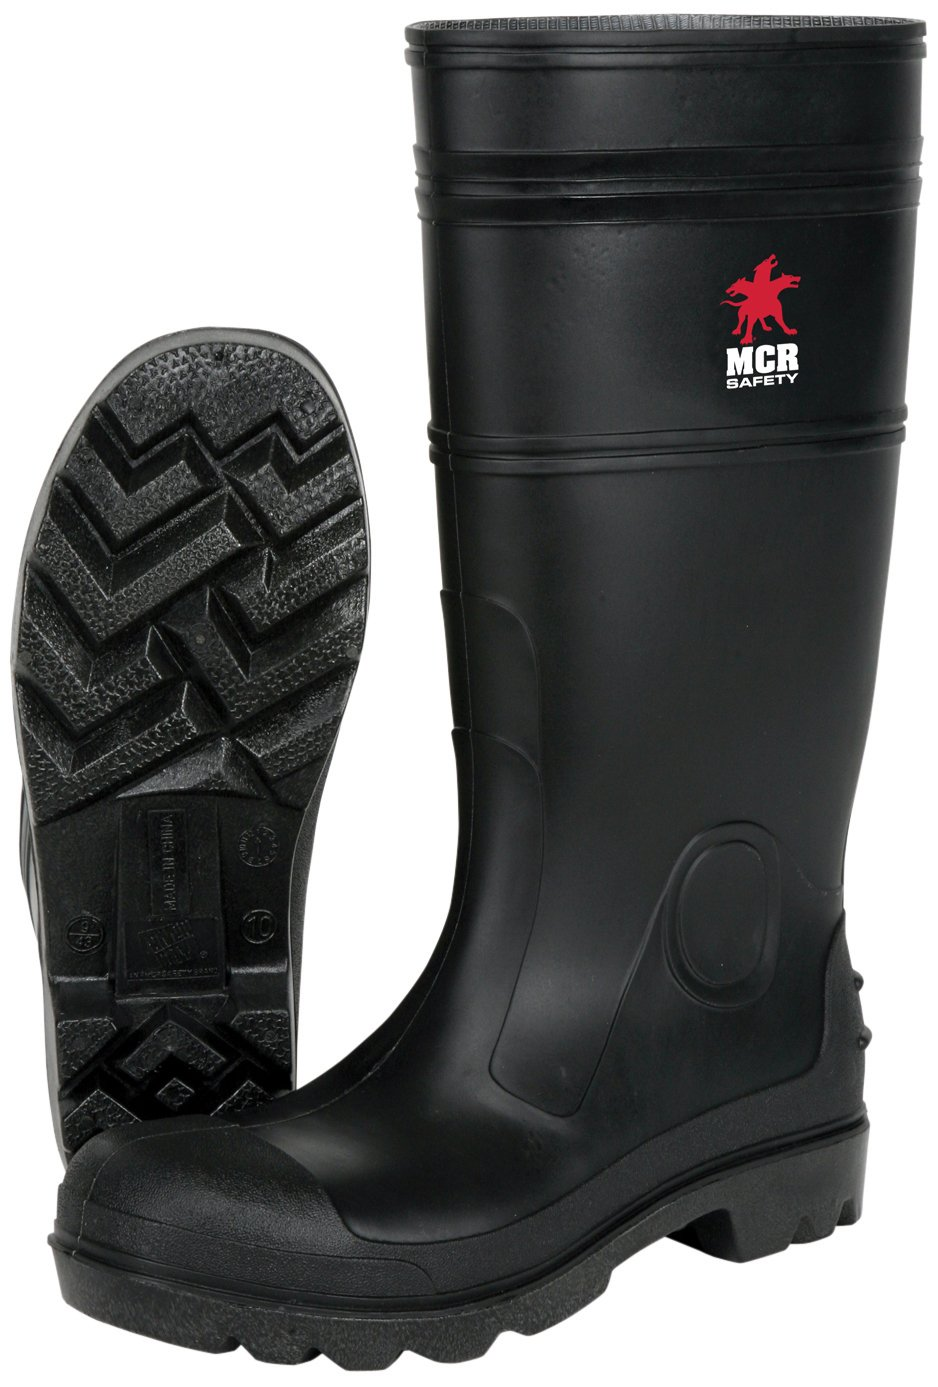 8f235e4070f MCR Safety PBS12011 Waterproof PVC Men's Knee Boot with Steel Toe, Black,  Size 11, 1-Pair